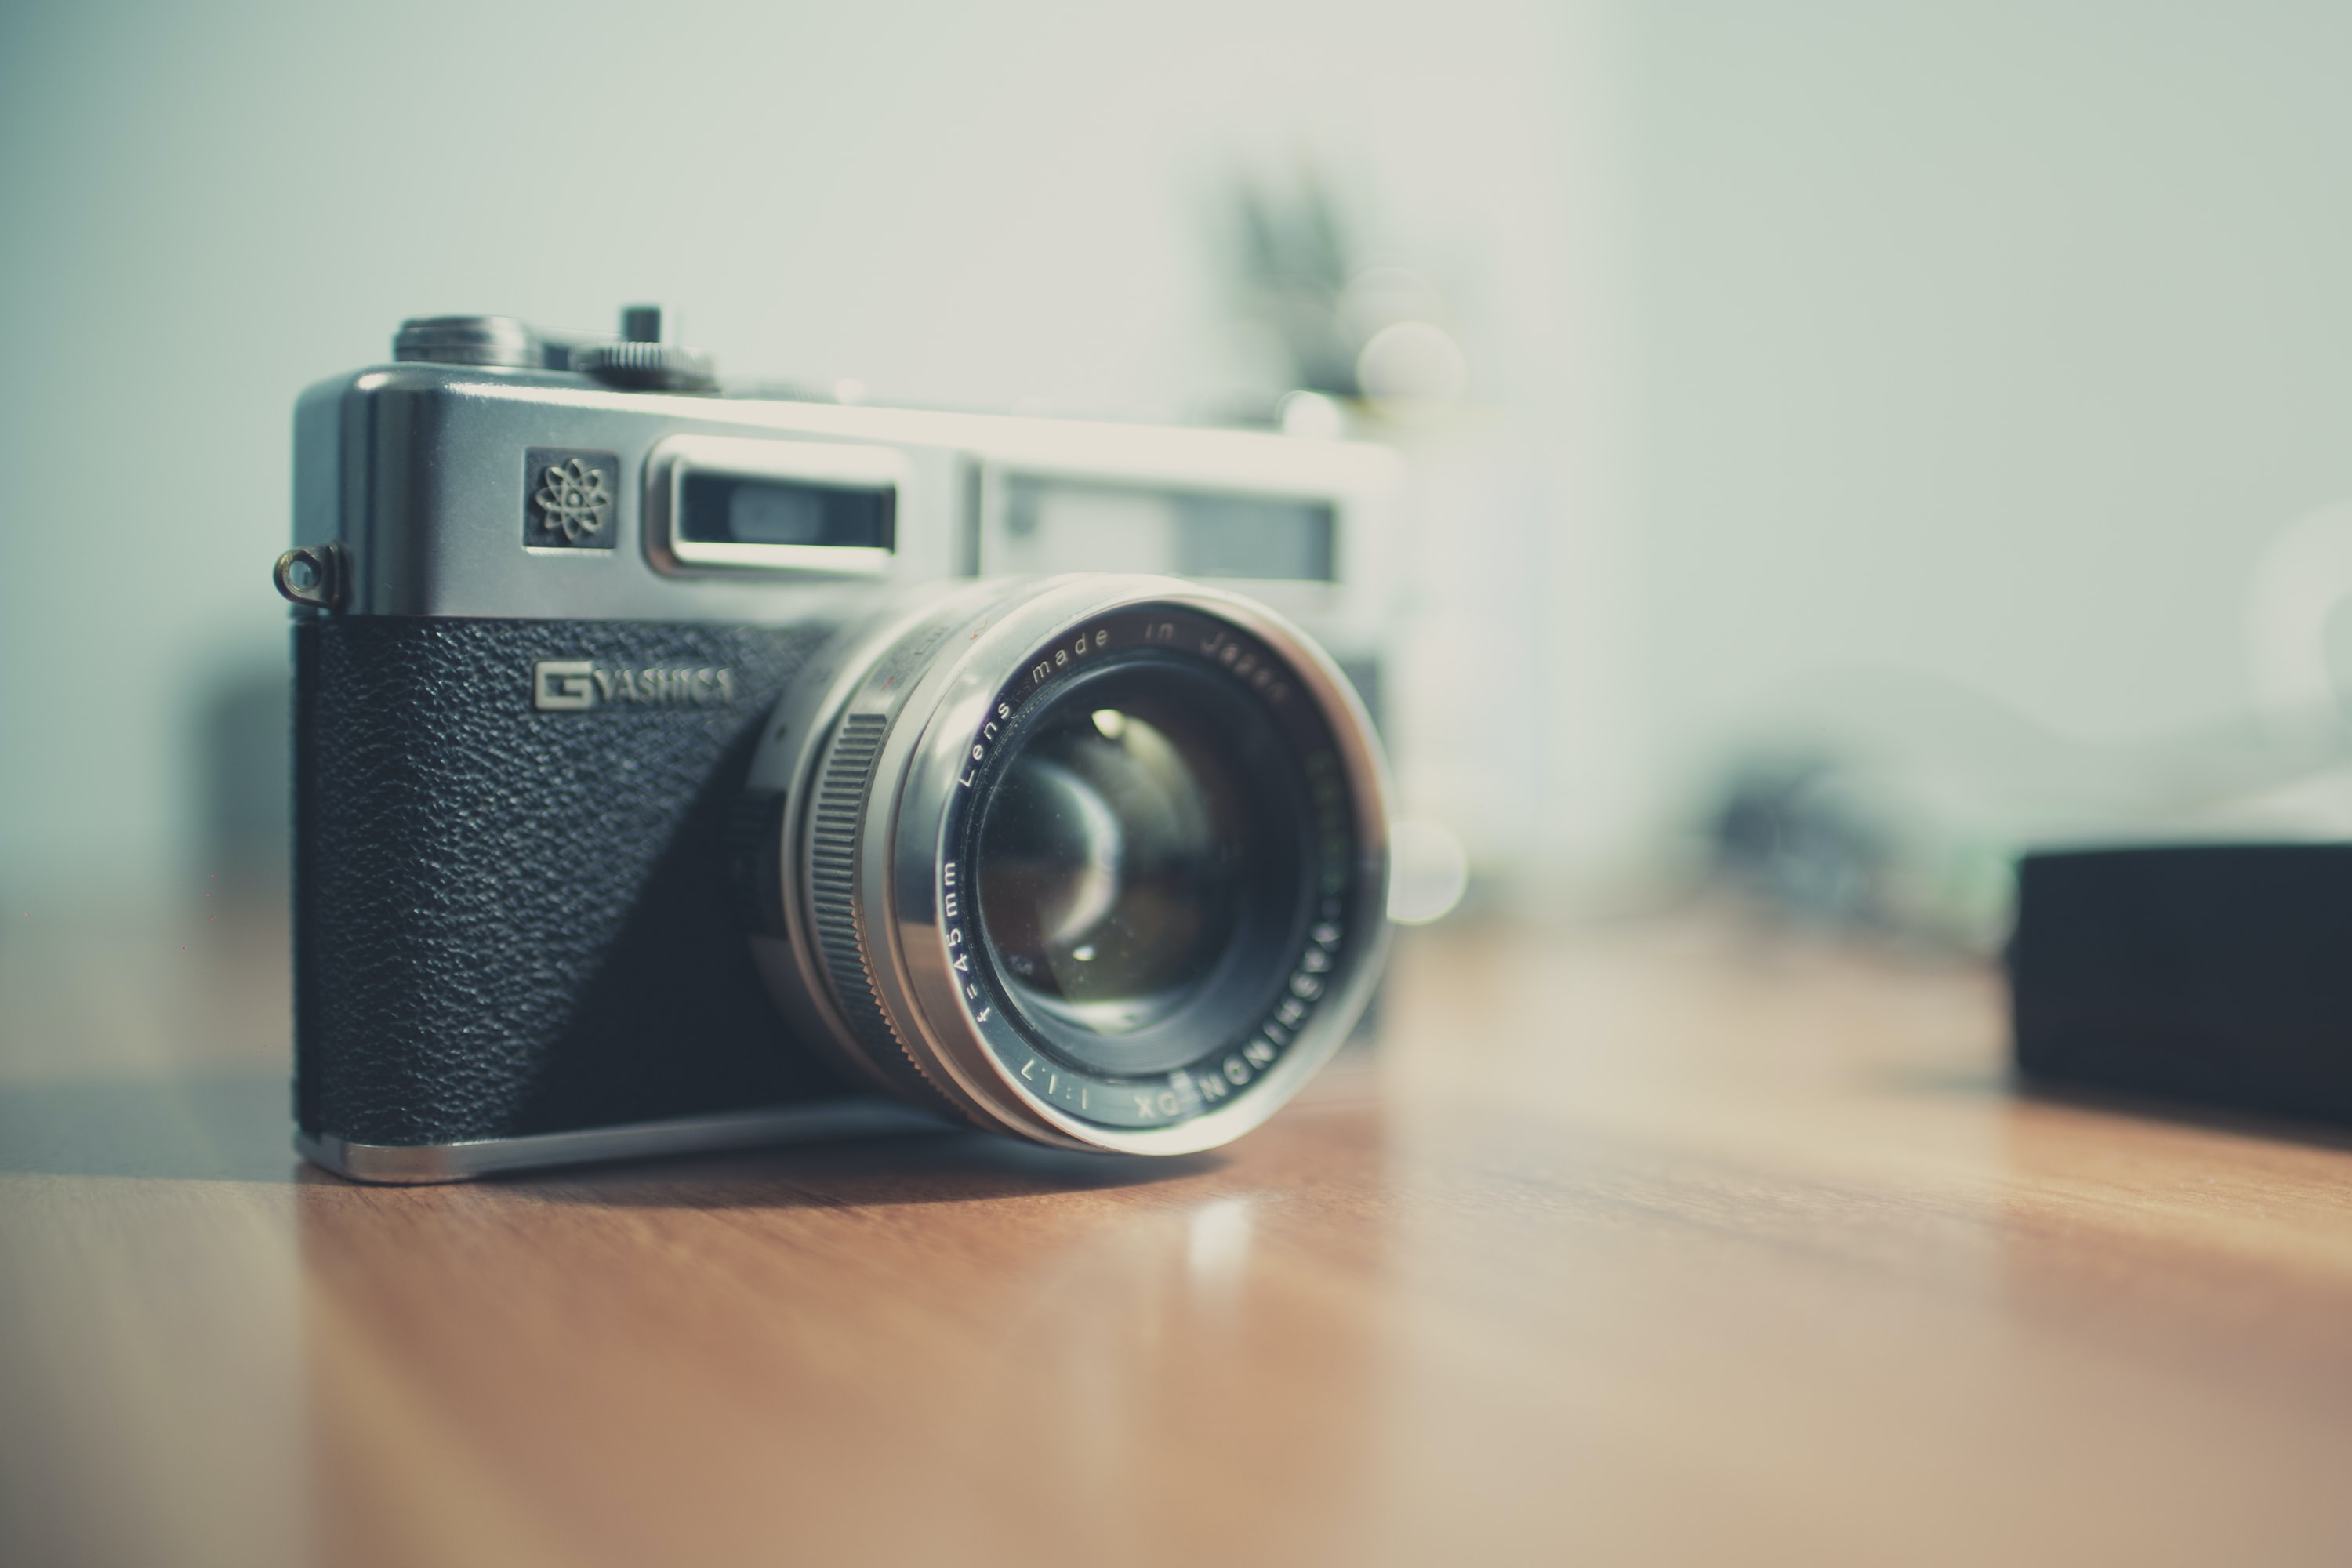 Close-up of a Yashica camera on a wooden surface